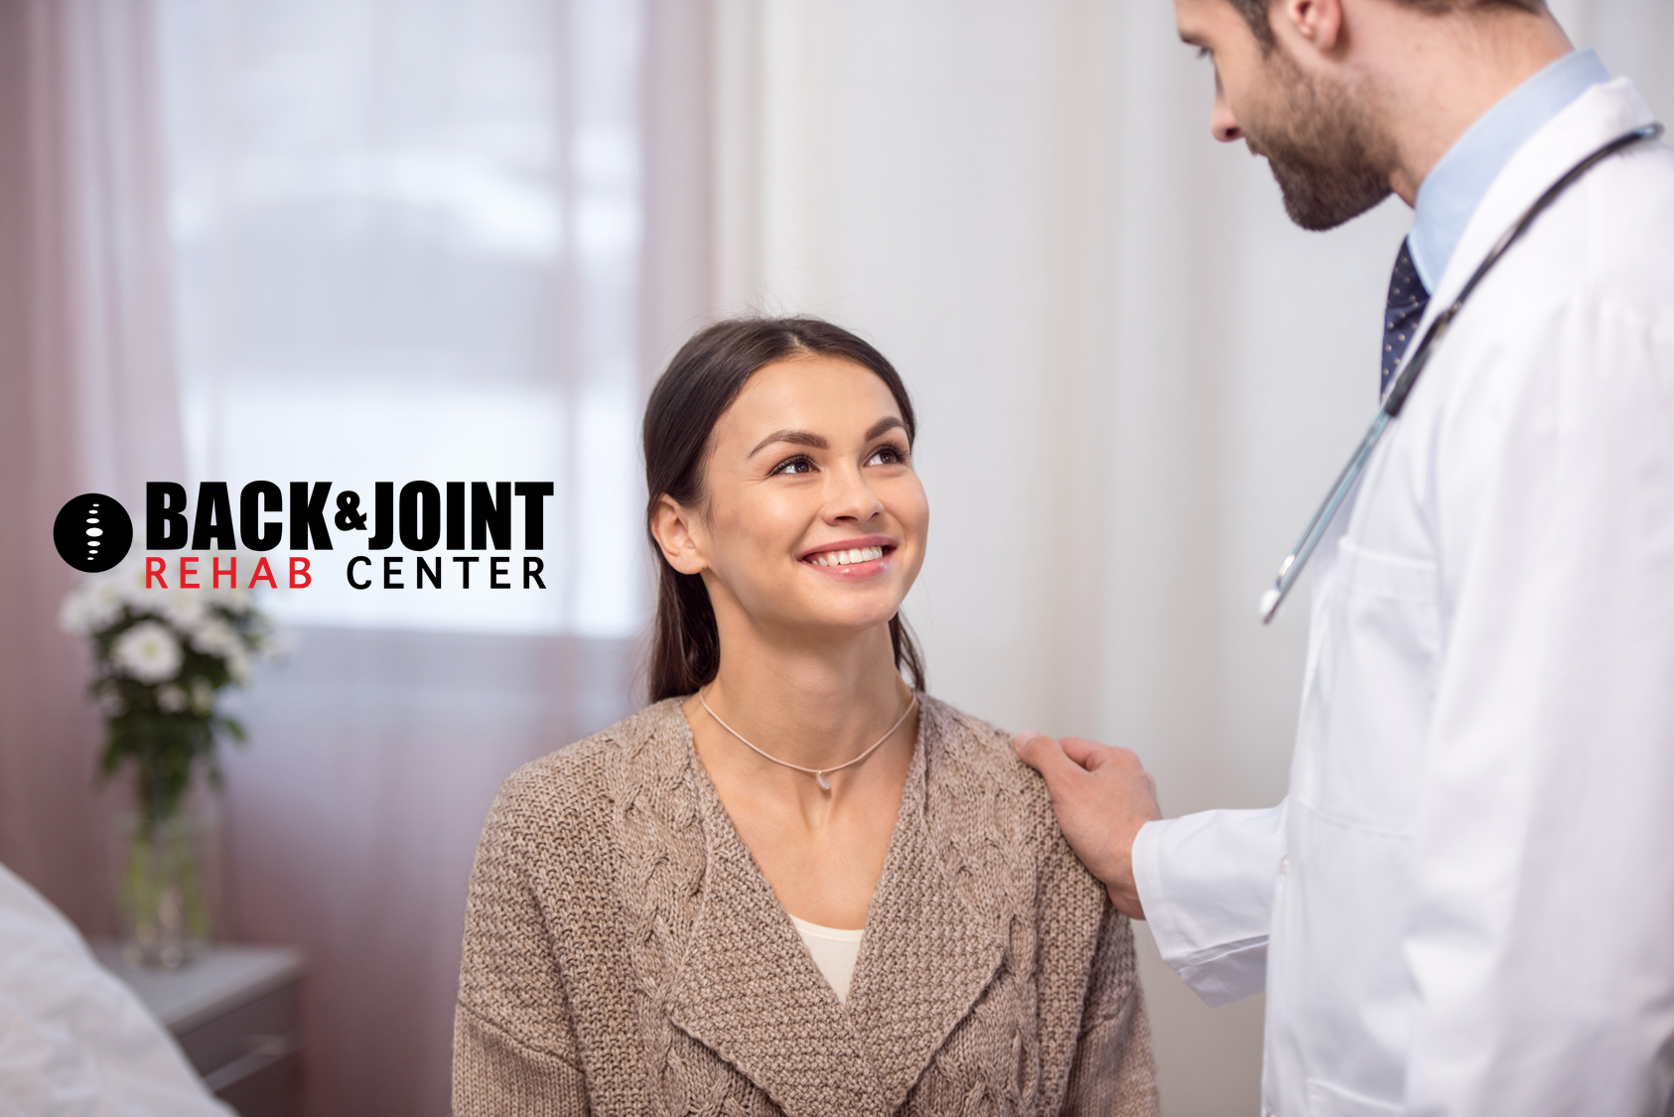 doctor, chiropractor, lower back pain, sciatica, herniated disc, crown point, indiana, lowell, merrillville, hobart, cedar lake, st john